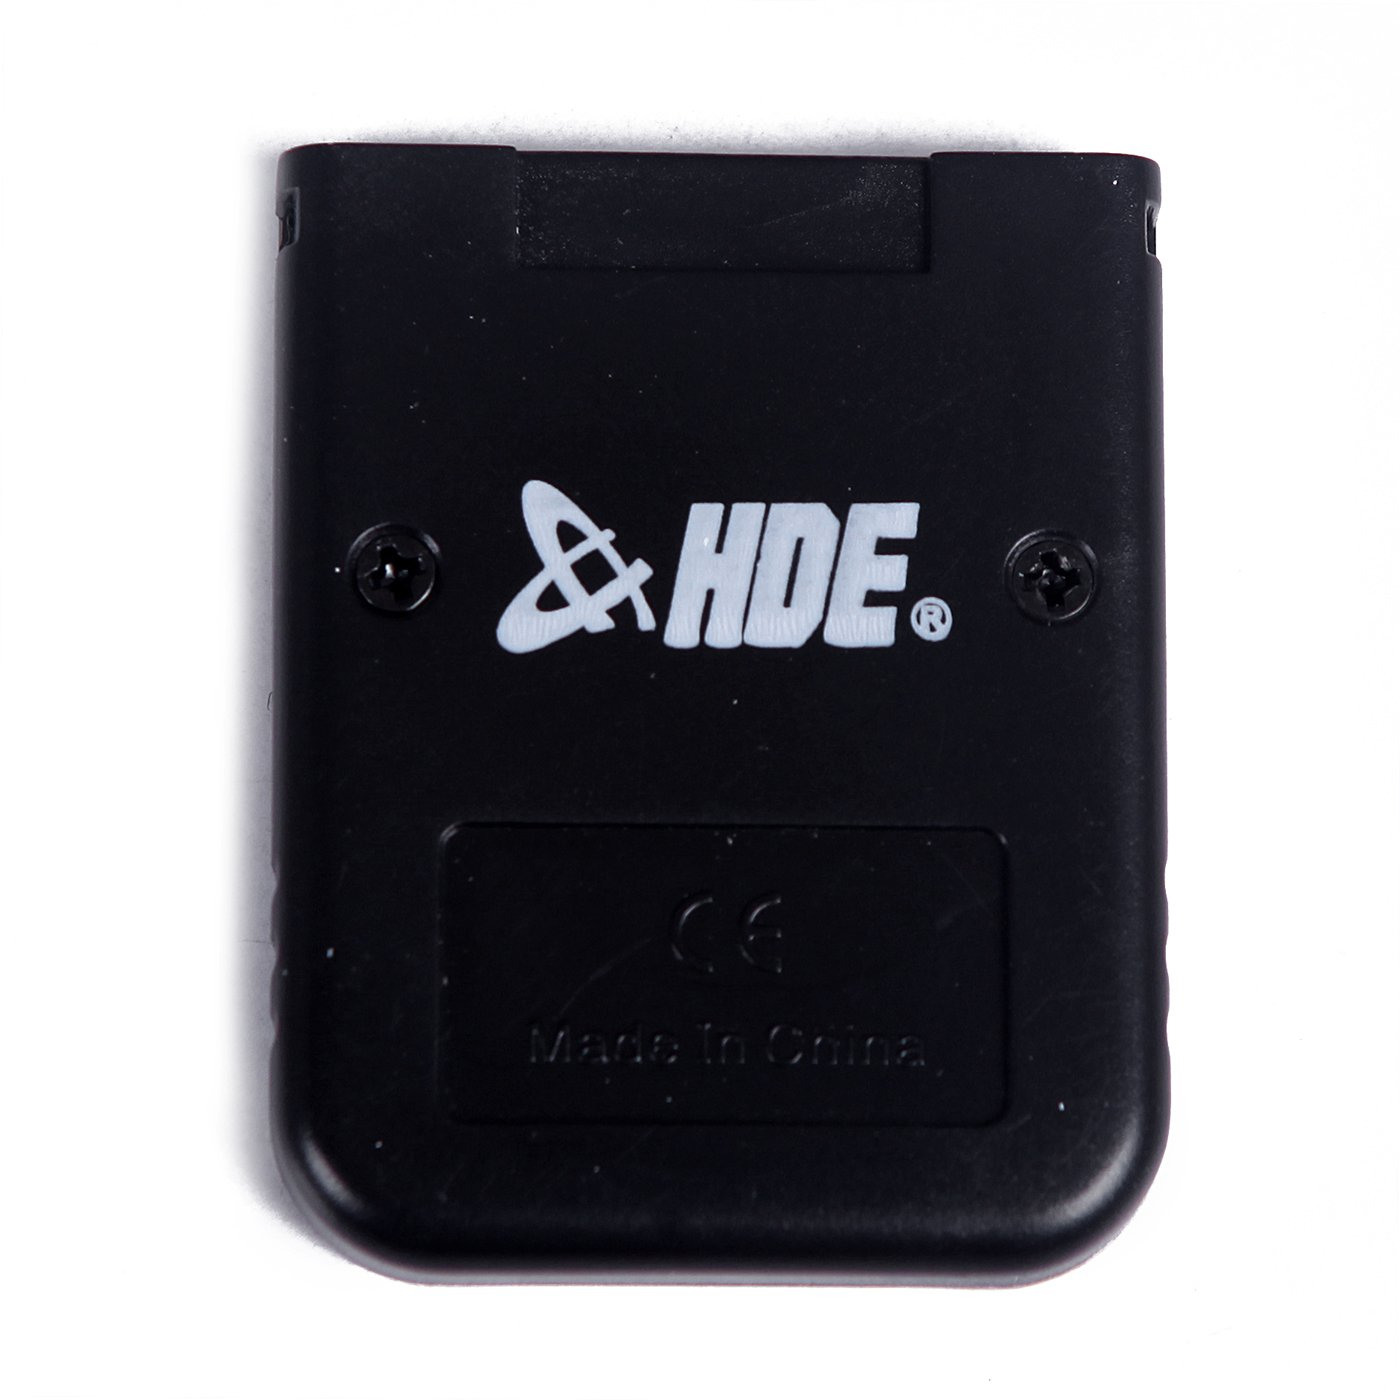 HDE 128MB (2048 Blocks) Black Memory Card for Nintendo GameCube or Wii